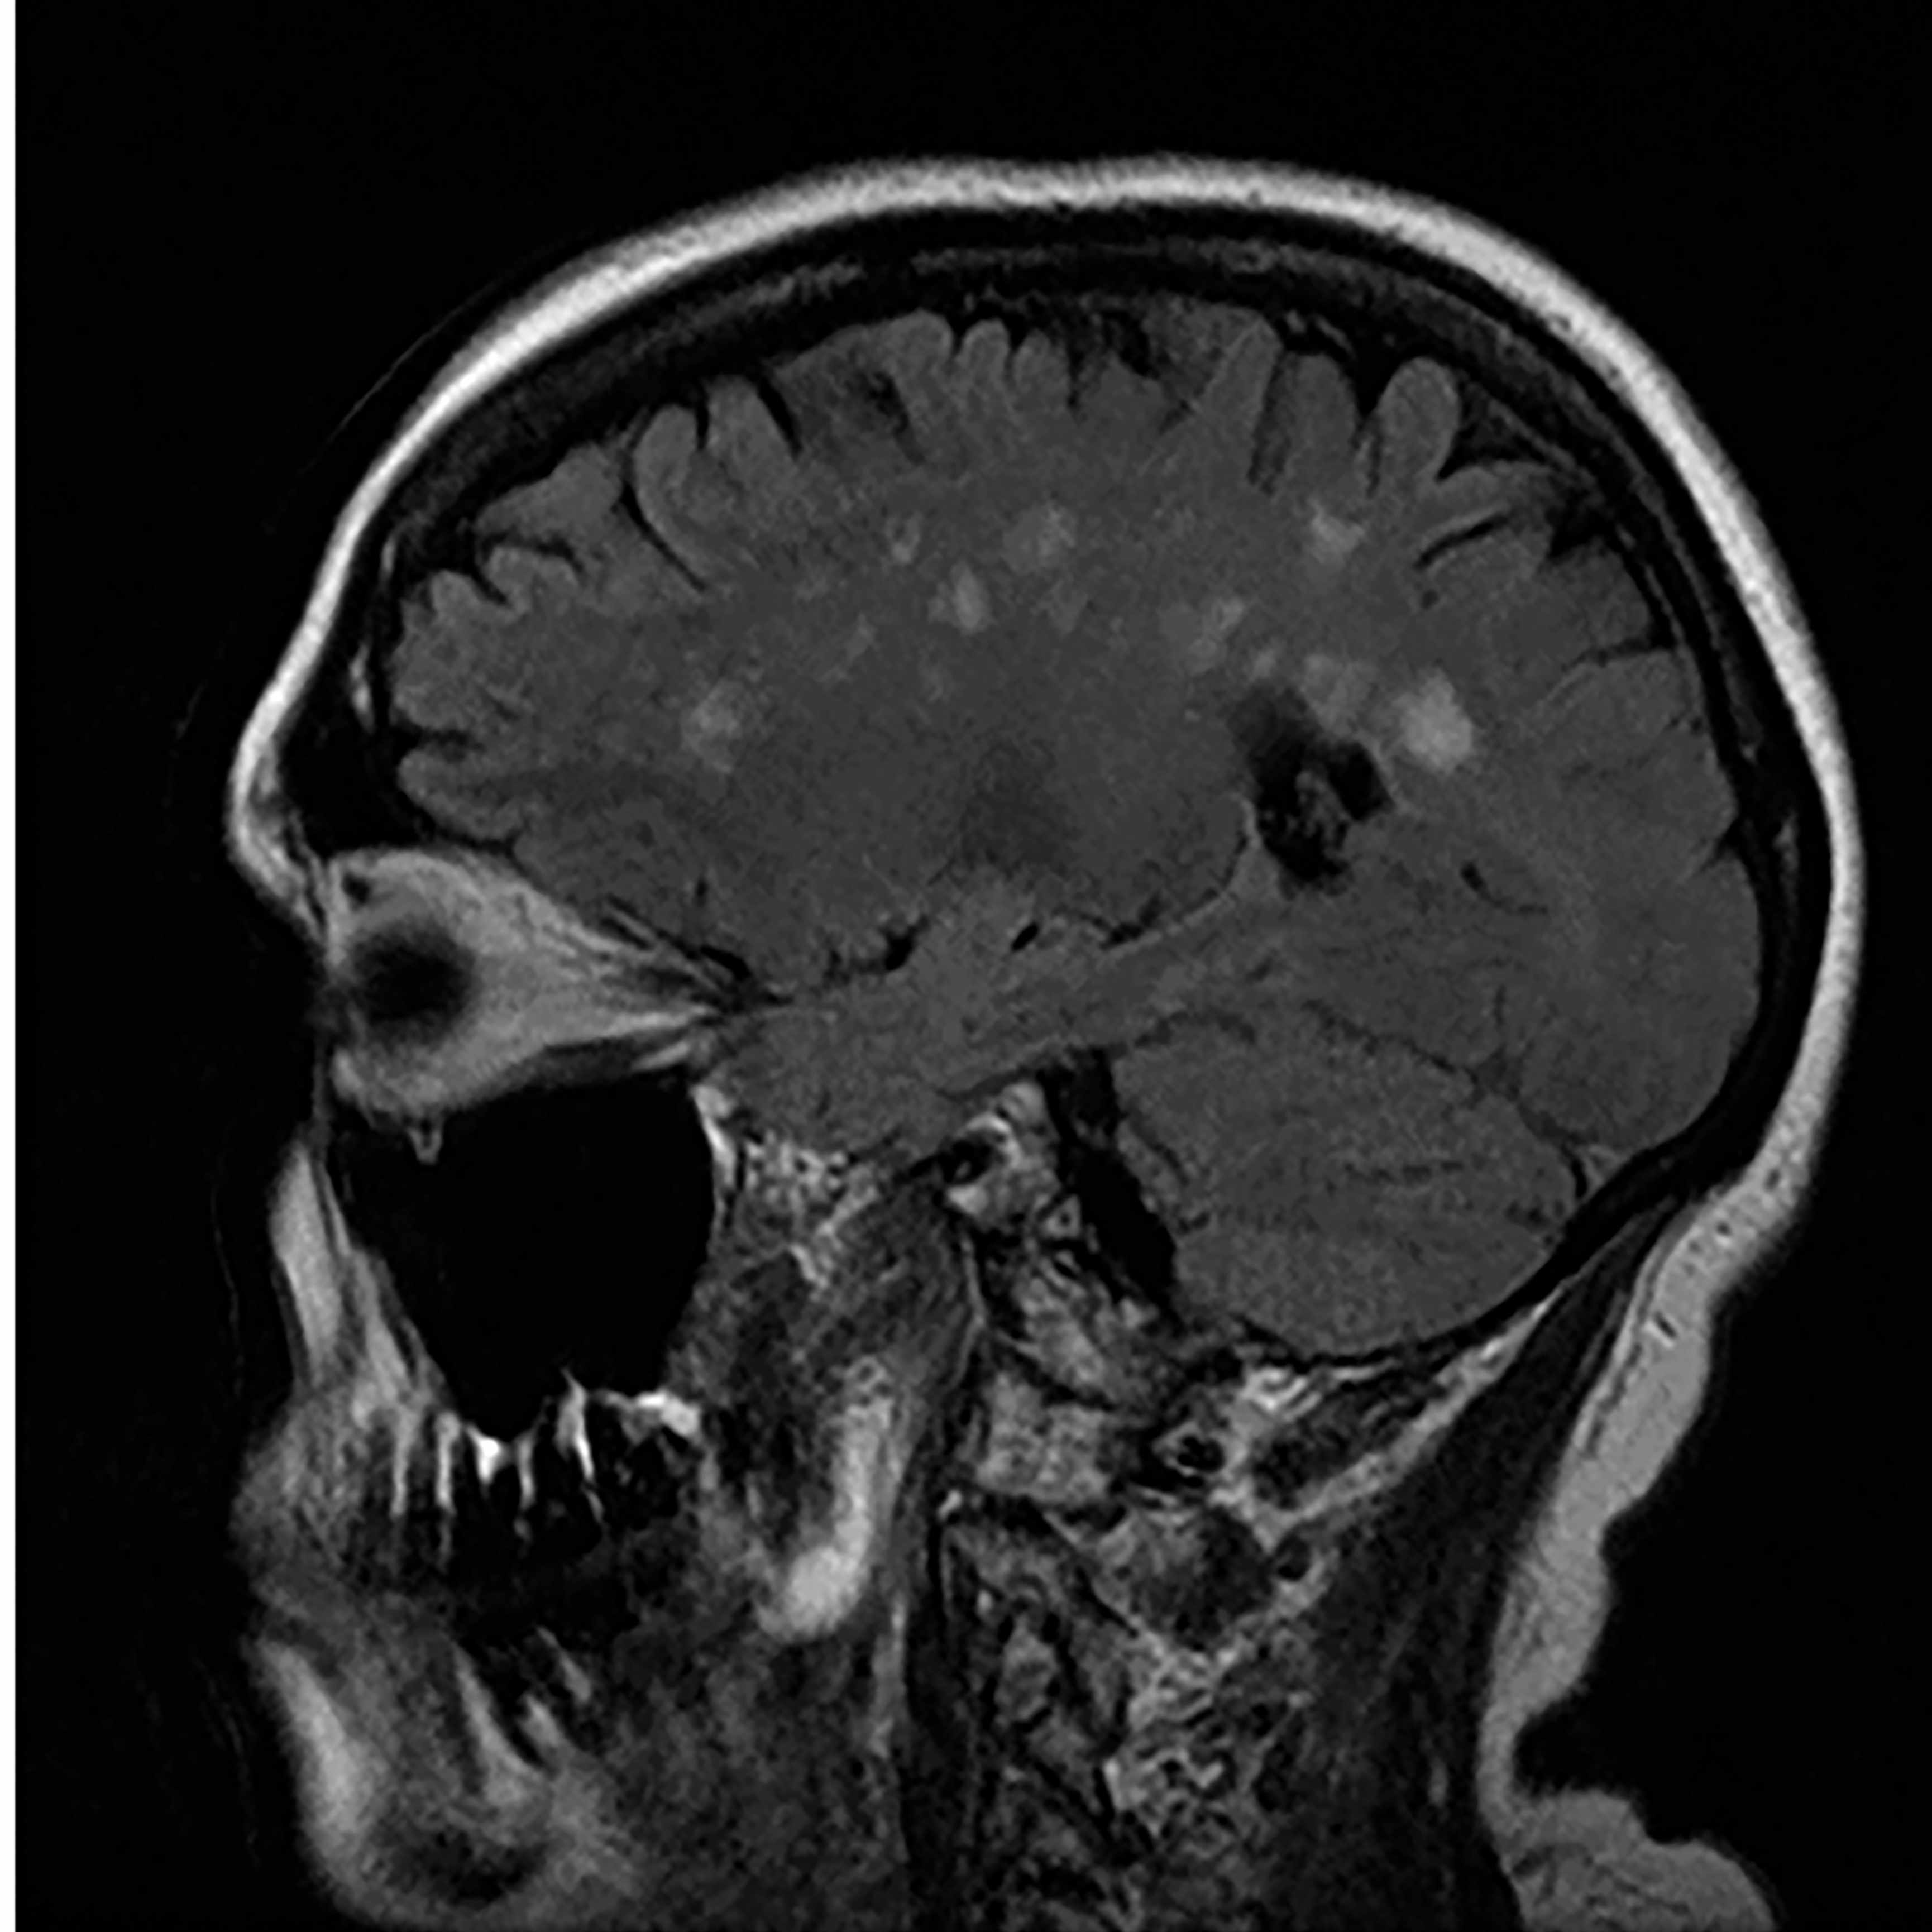 Black and white scan of the profile of a scull and brain